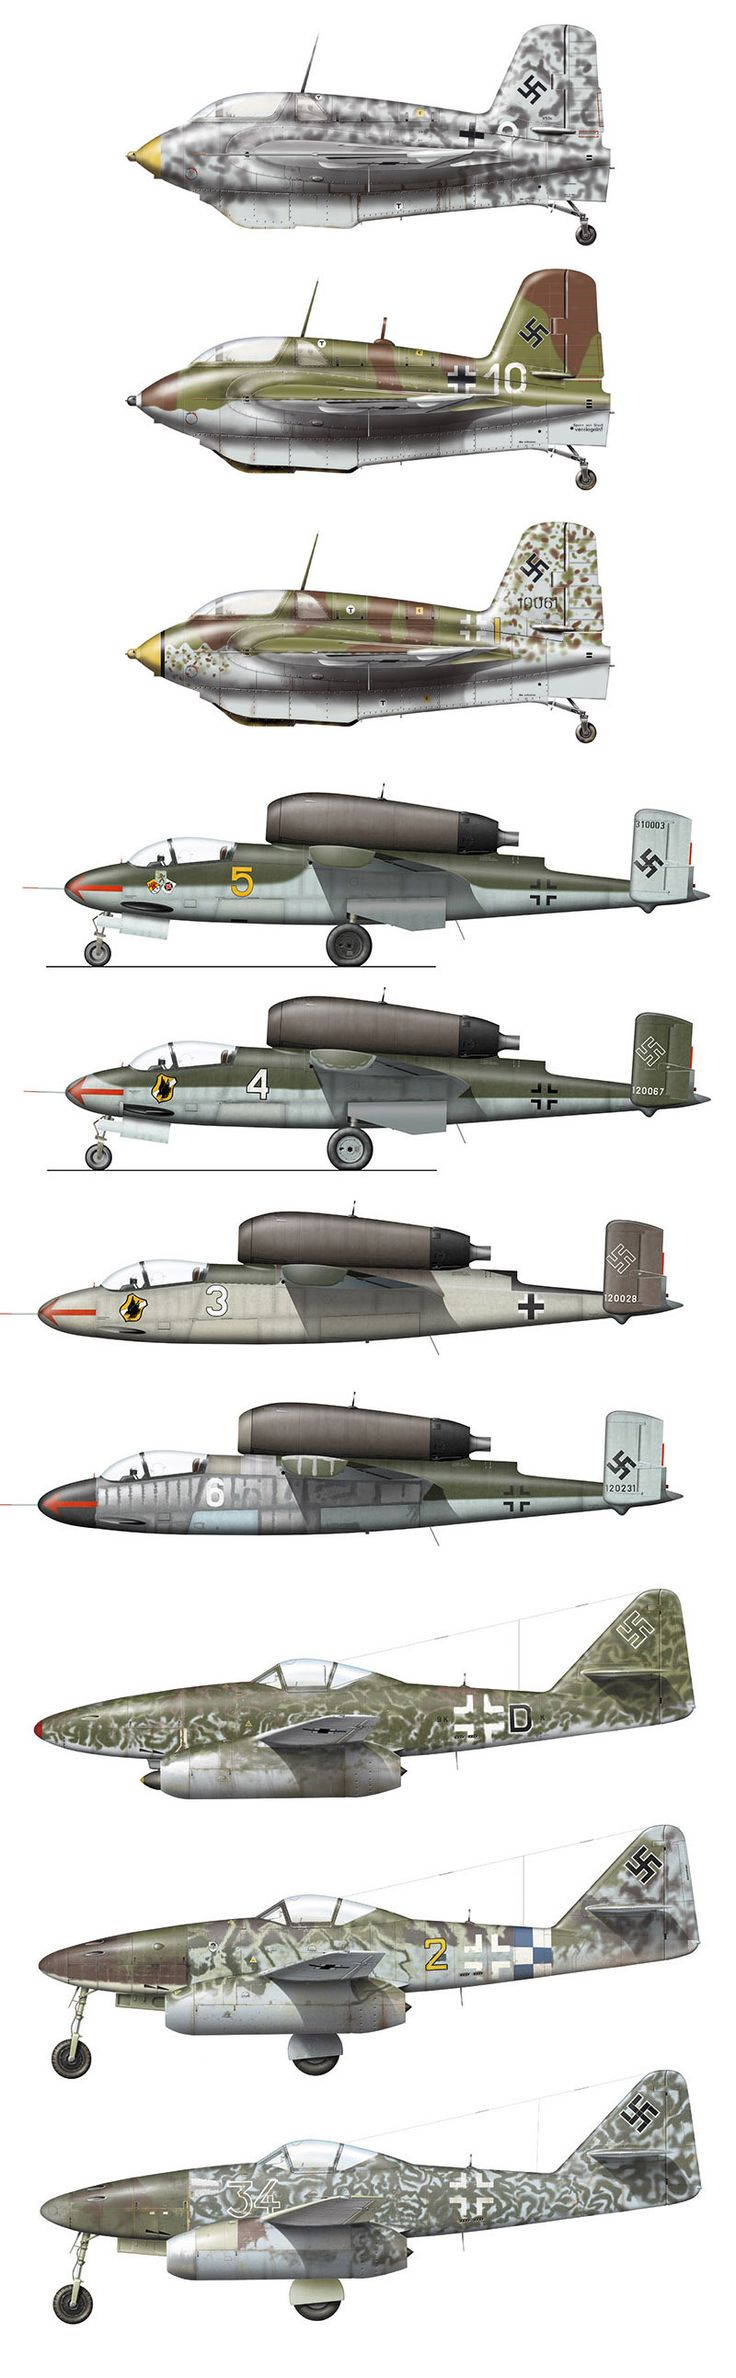 Luftwaffe Jets Me 163 / He 162 / Me 262 https://plus.google.com/+StephenMillerSteveMiller/posts